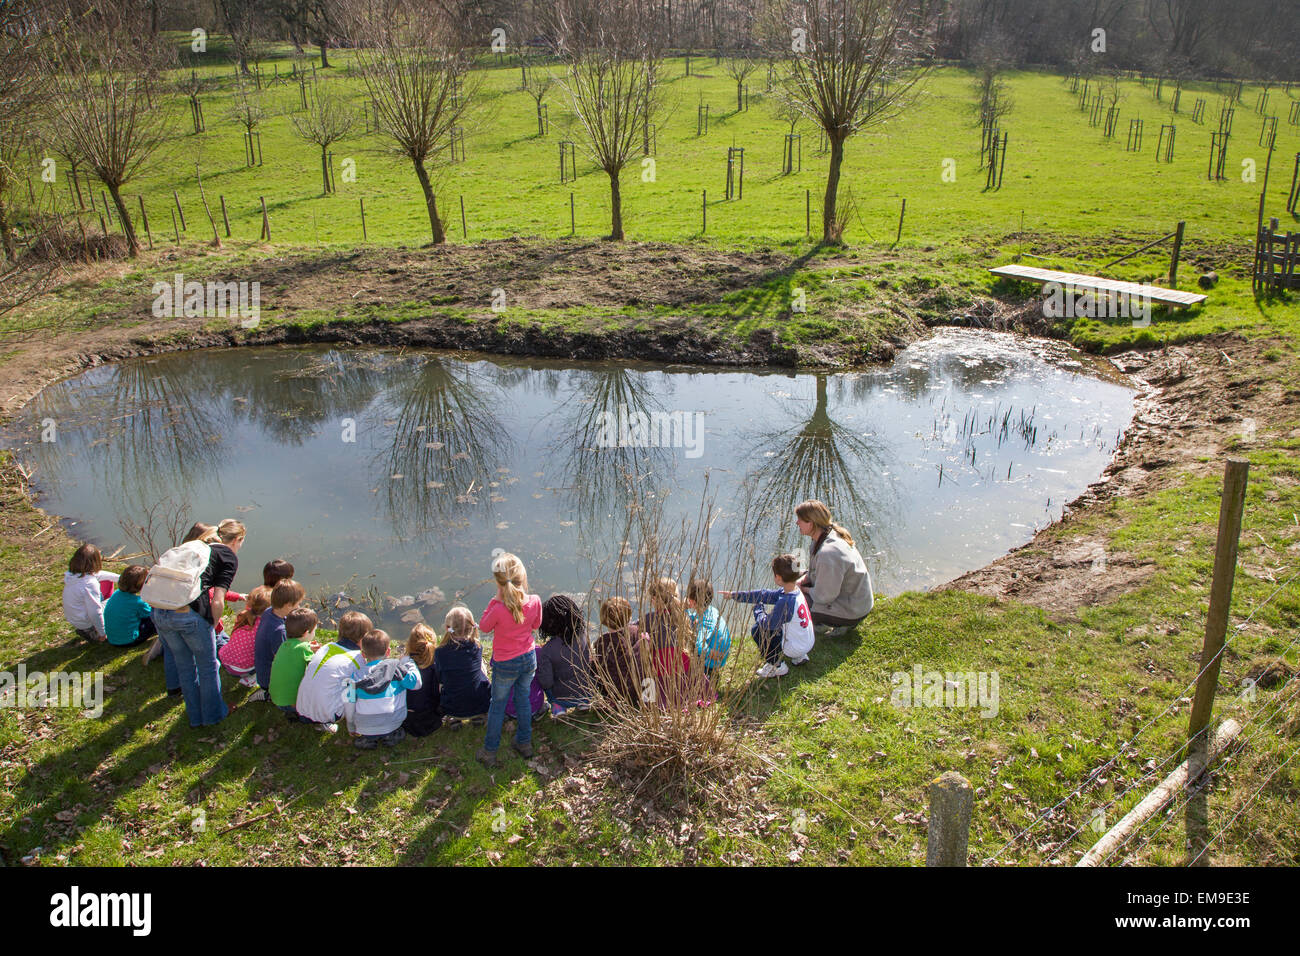 School children with teachers looking at frogspawn in old watering place for cattle, habitat for amphibians like - Stock Image